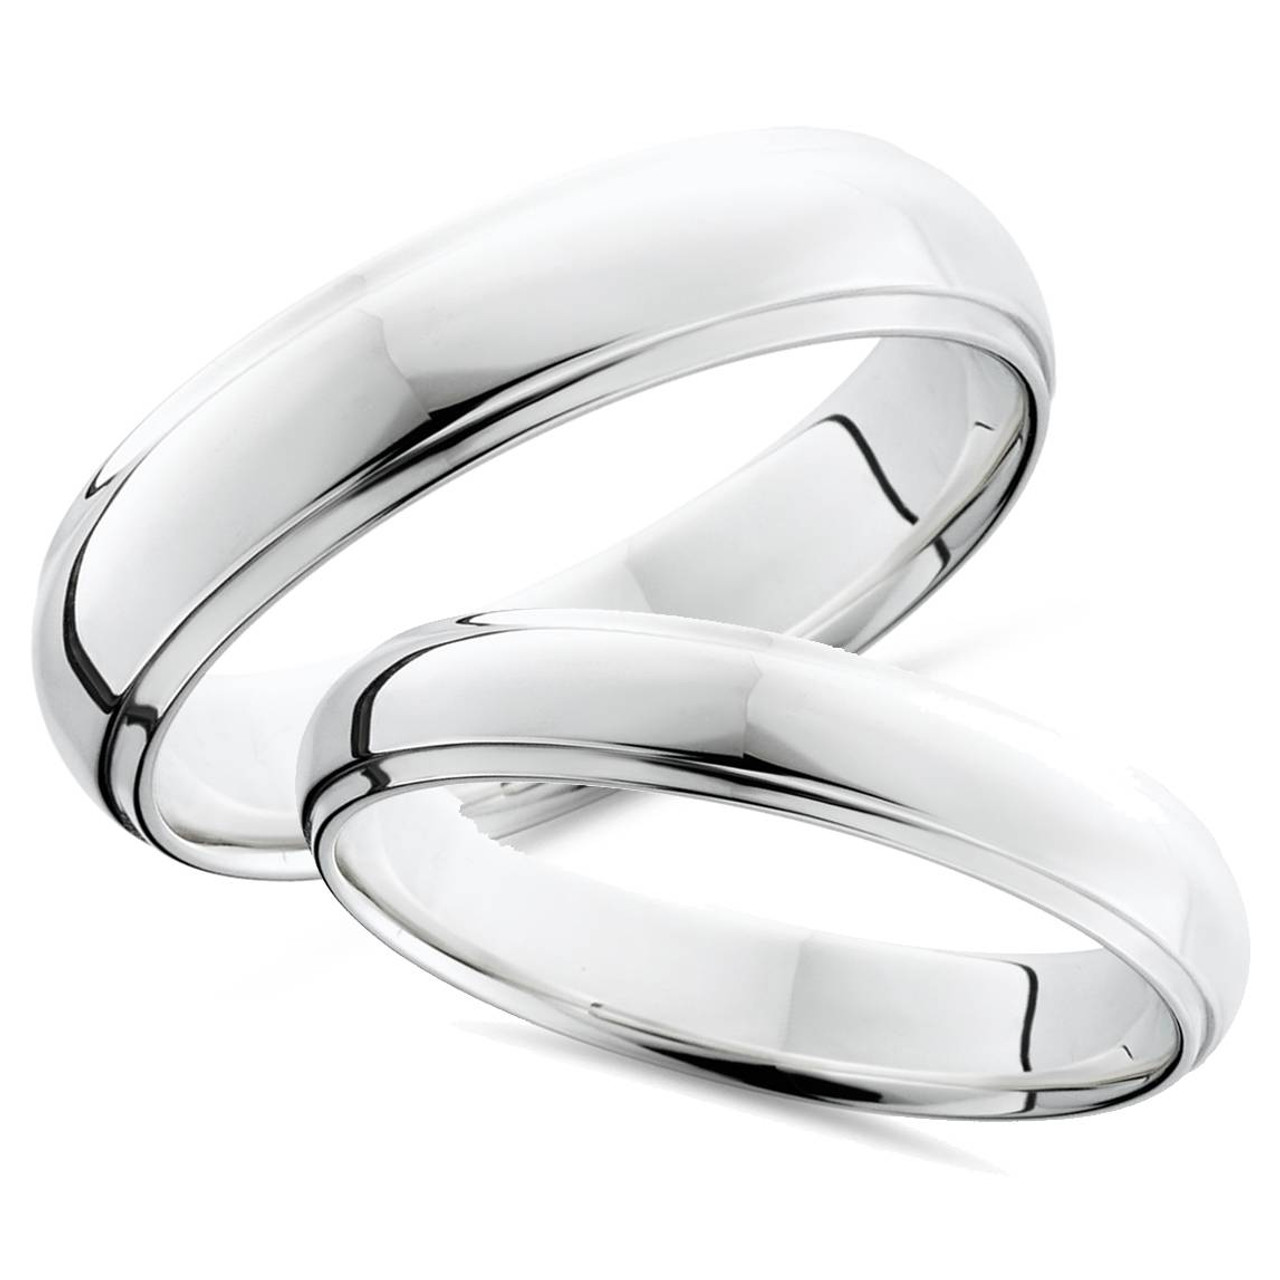 Platinum Matching His Hers Polished Wedding Bands Set Wb4490 Sd3d71ba2asa5ozcloudfront53000589imageswb449011: Matching Platinum Wedding Bands At Reisefeber.org